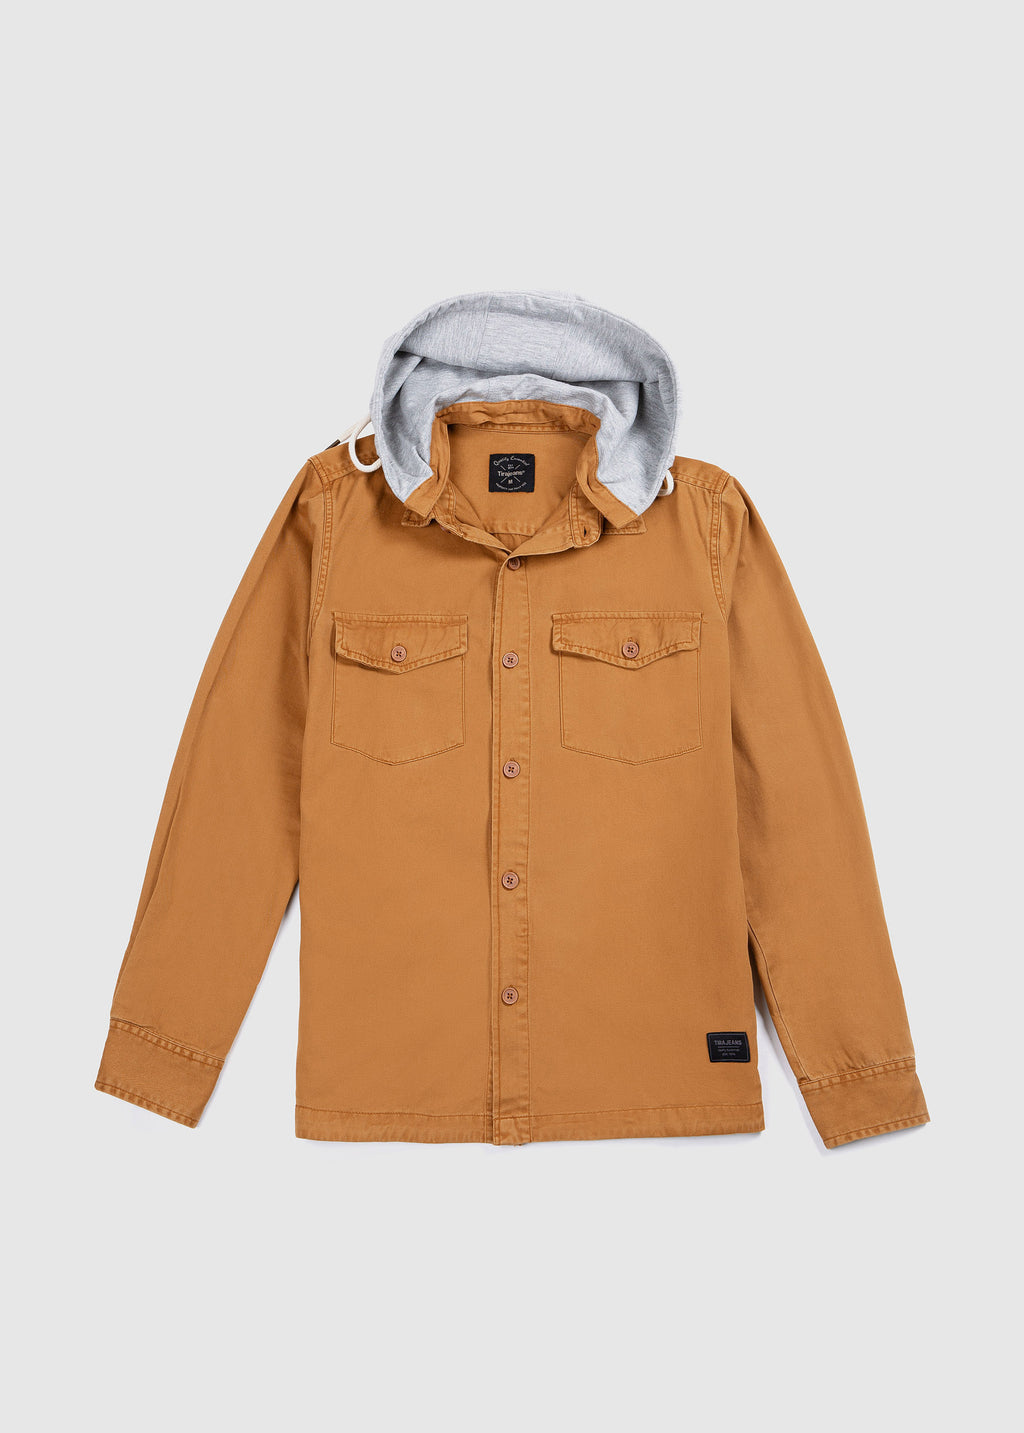 SHIRT JACKET BROWN FW19